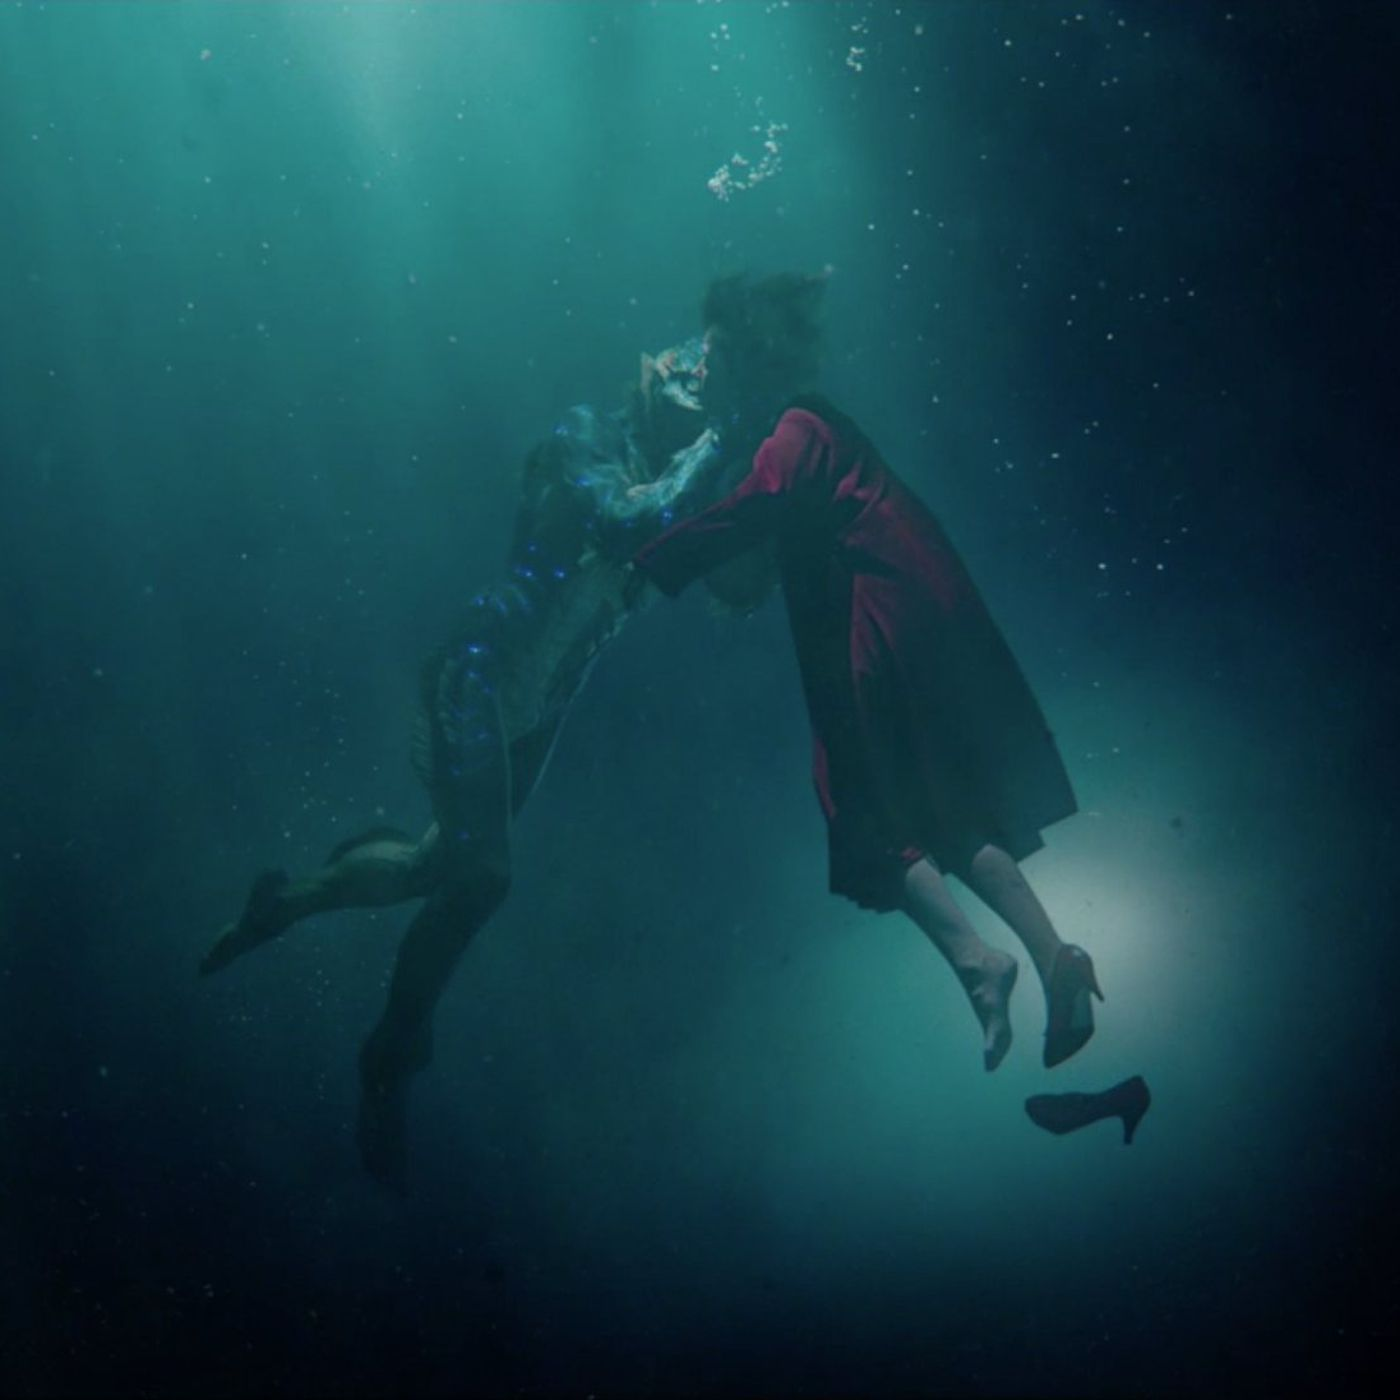 The Shape of Water, from Guillermo del Toro, is a beautiful